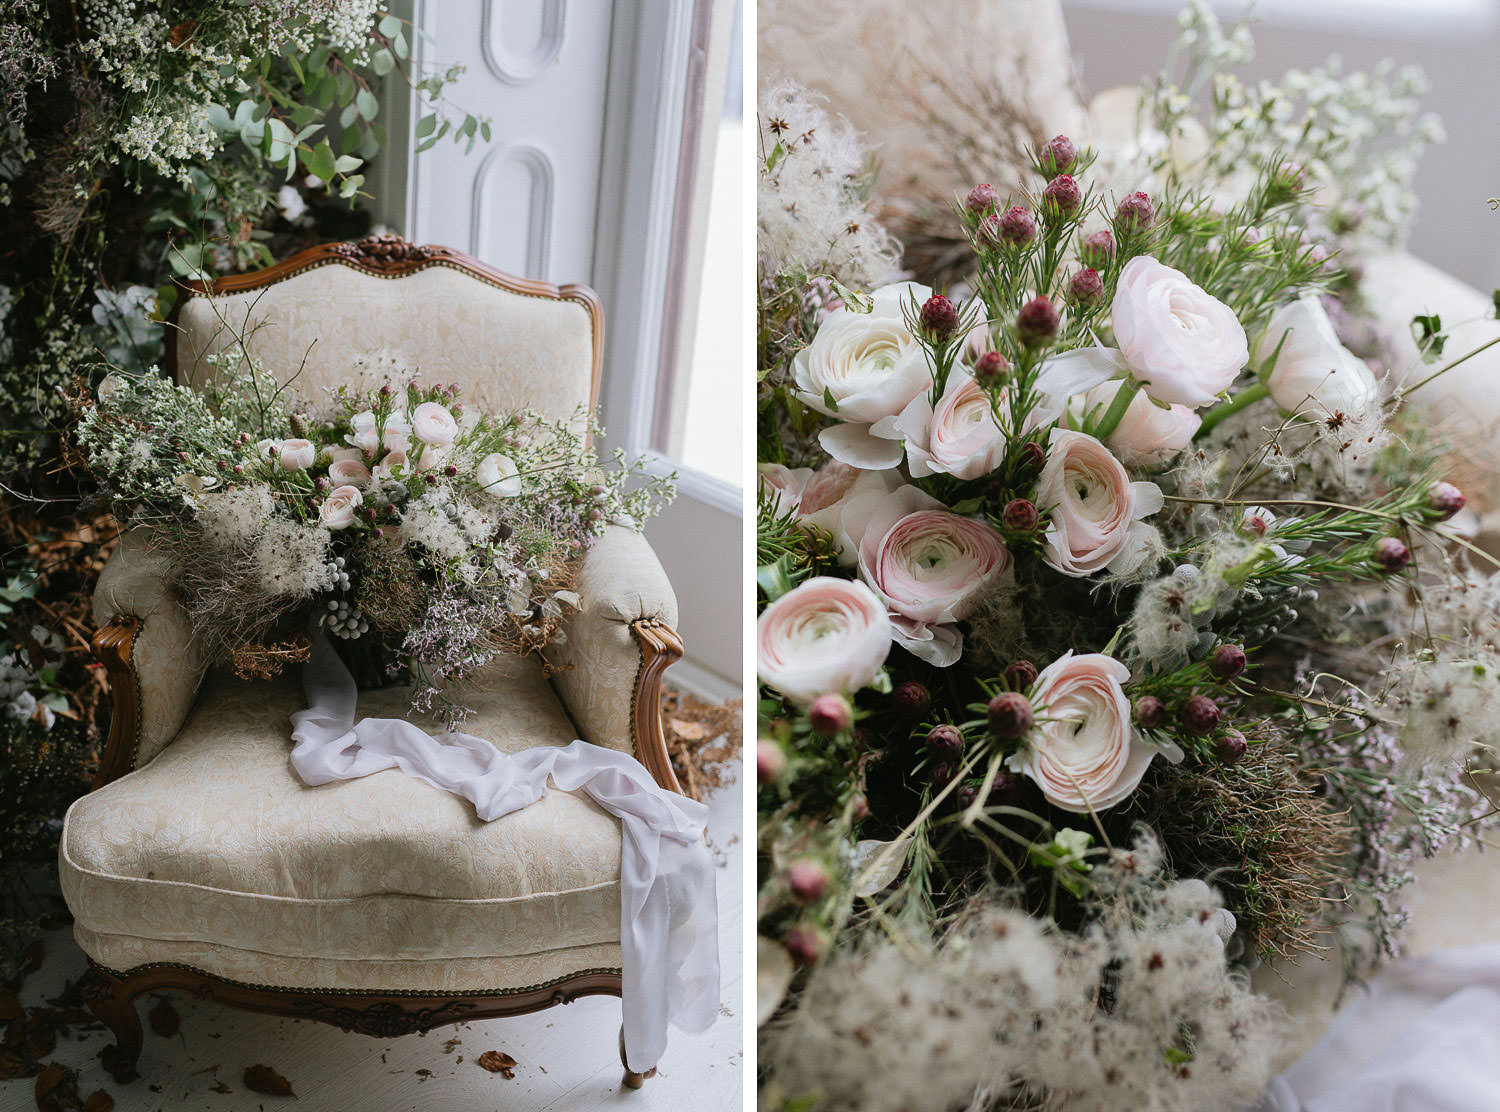 Gorgeous botanical inspired wedding bouquet by Figli dei Fiori Como - Florist in Lake Como | Photo: Camilla Anchisi